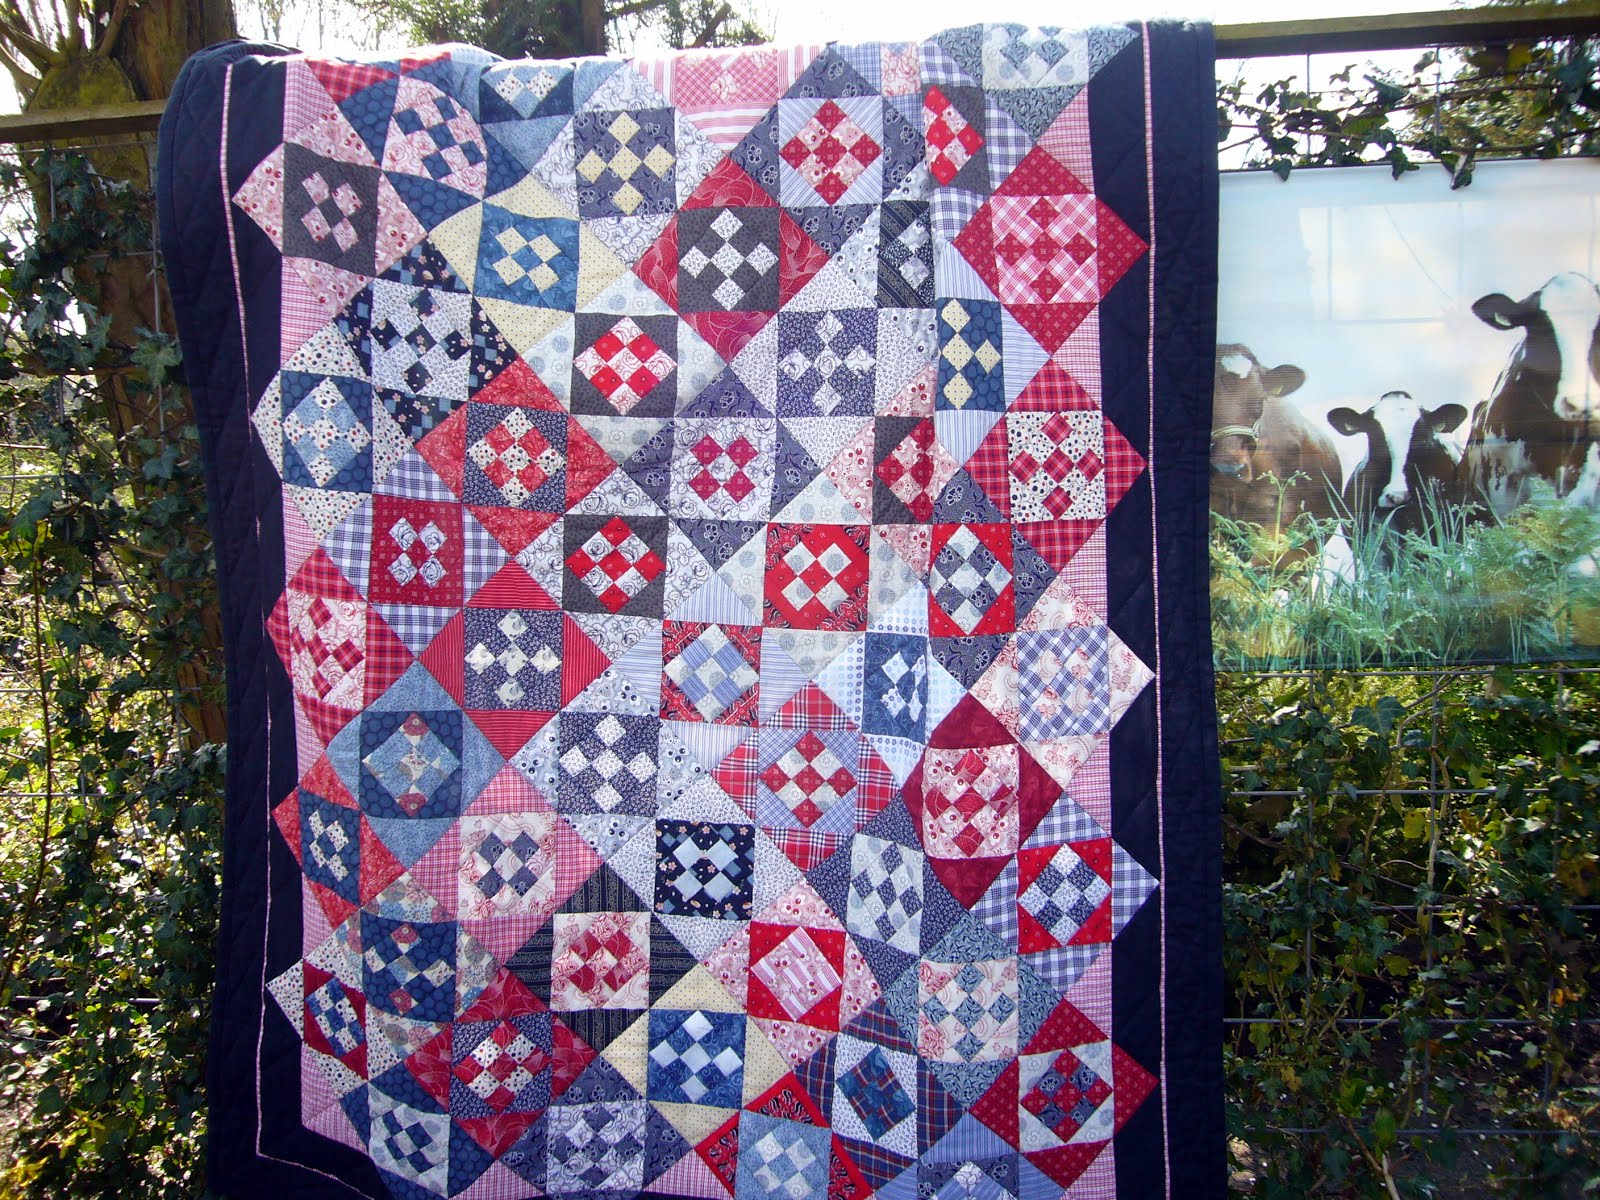 Hollandse quilt